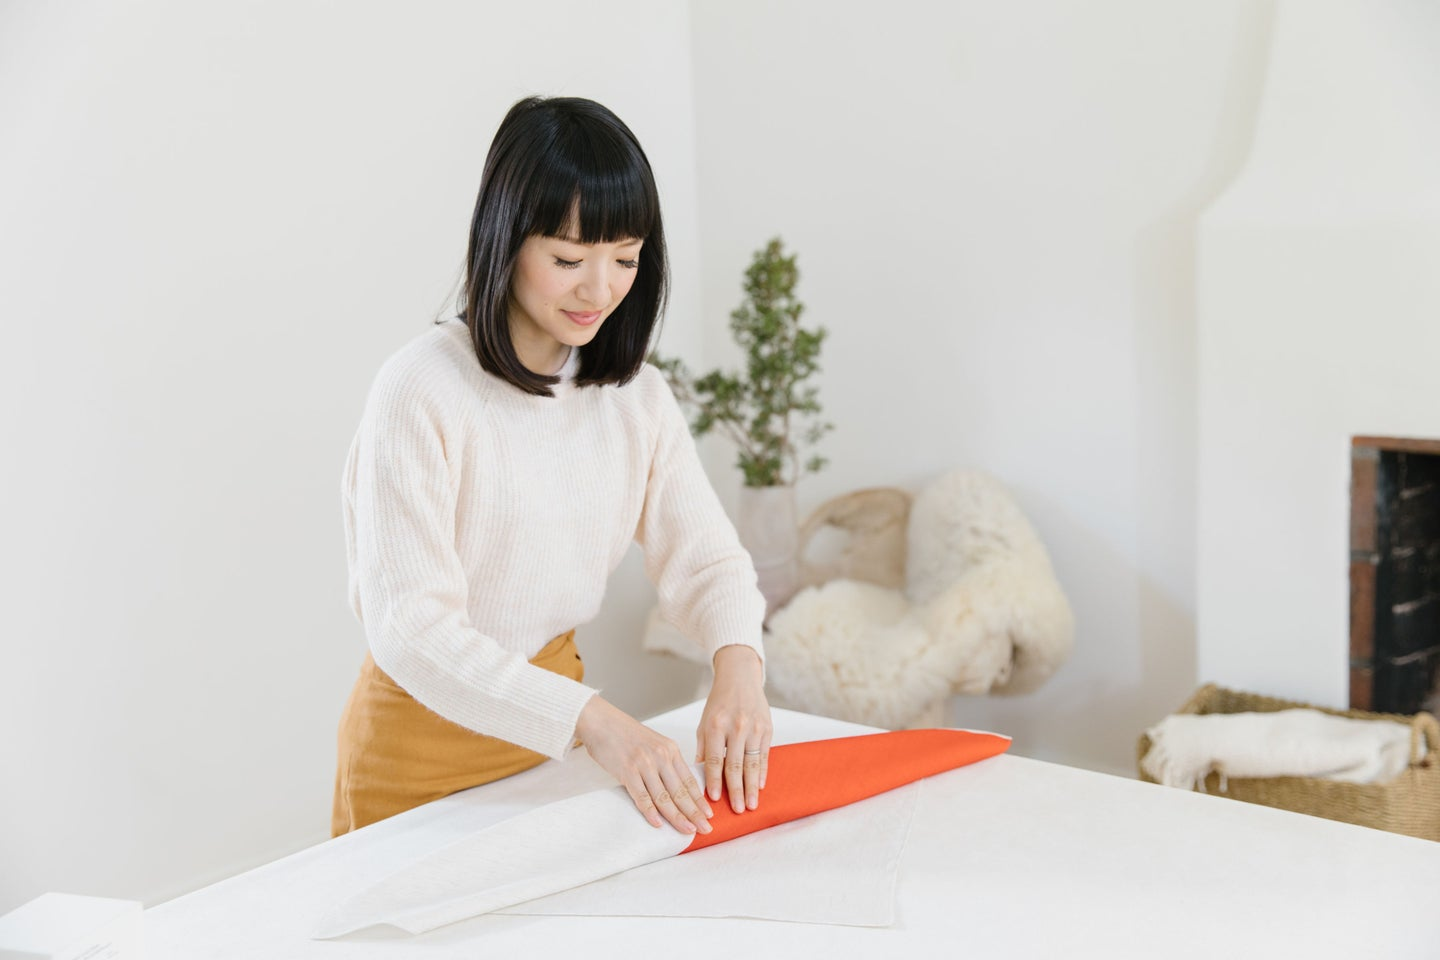 marie kondo wrapping gift